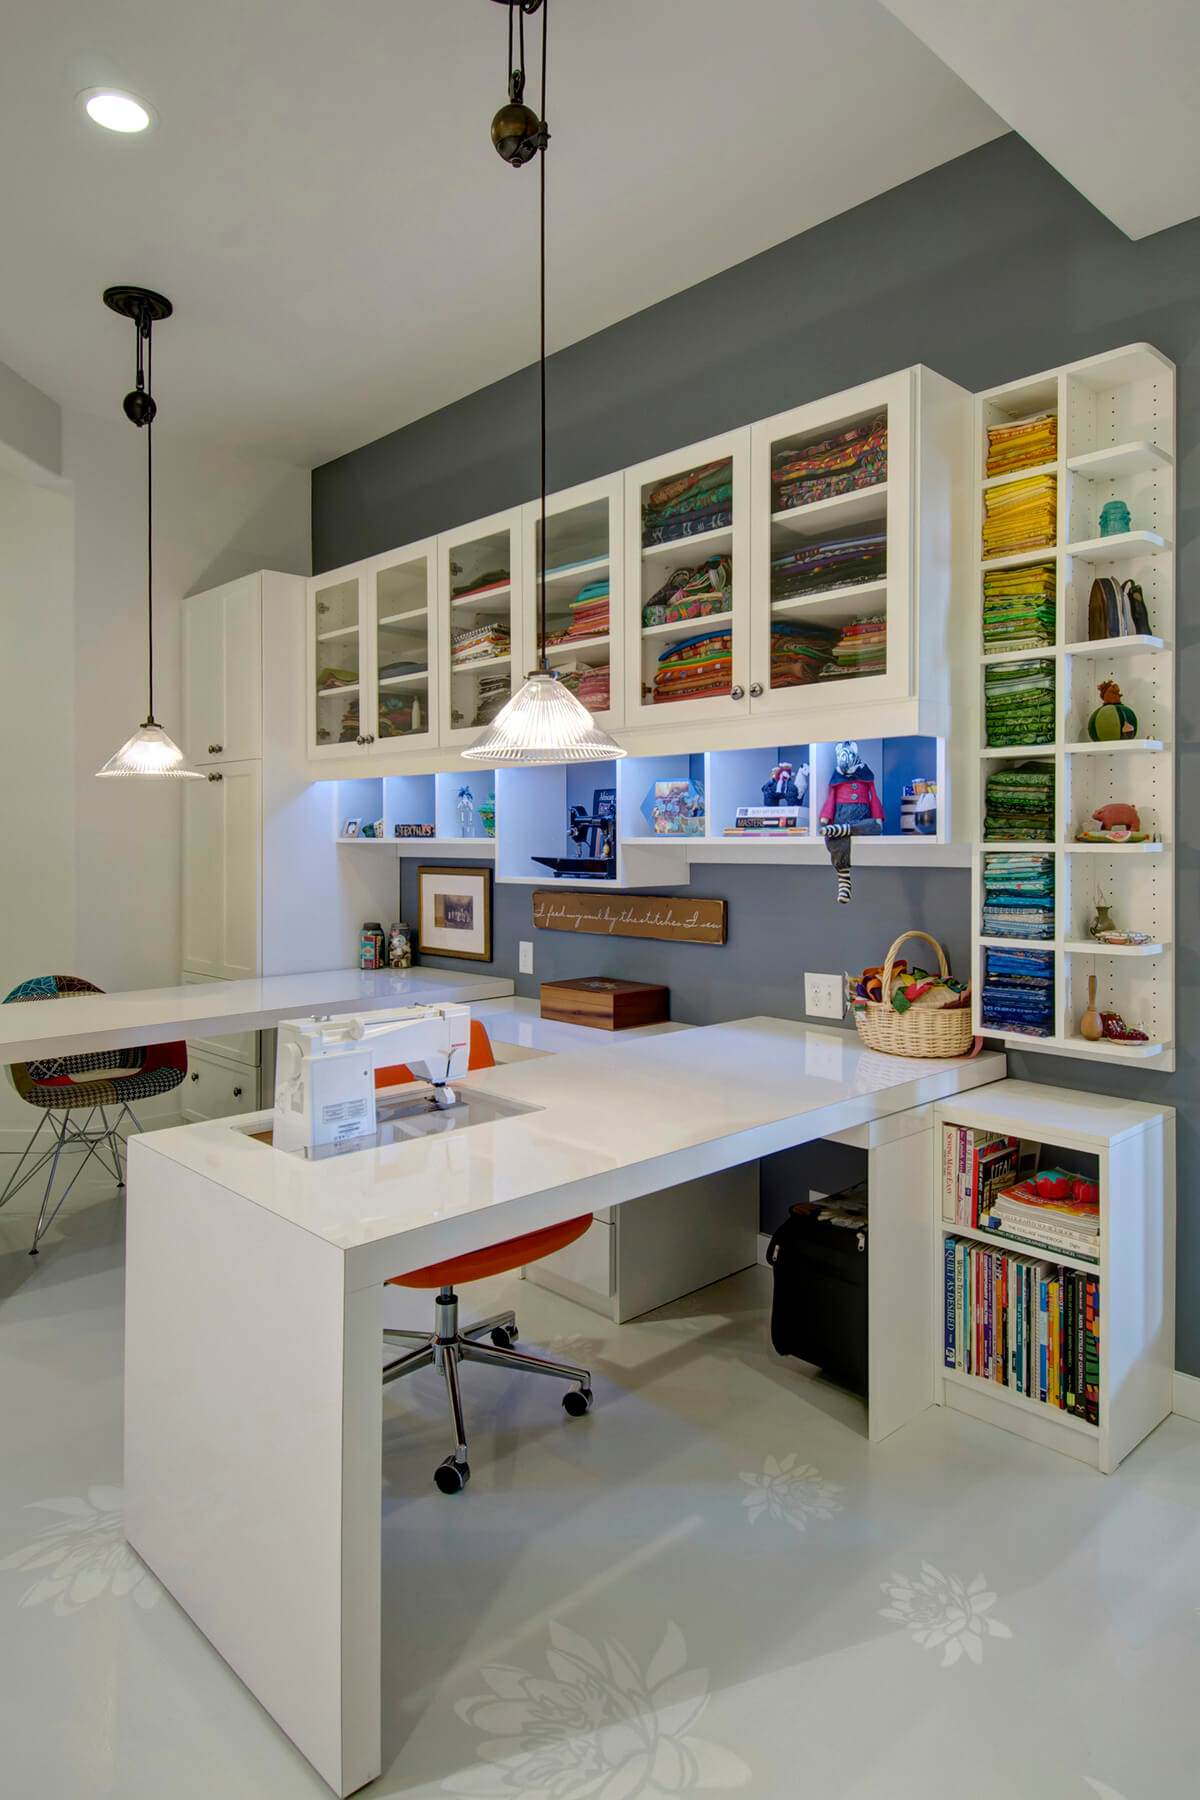 Room Design: 23 Craft Room Design Ideas (Creative Rooms